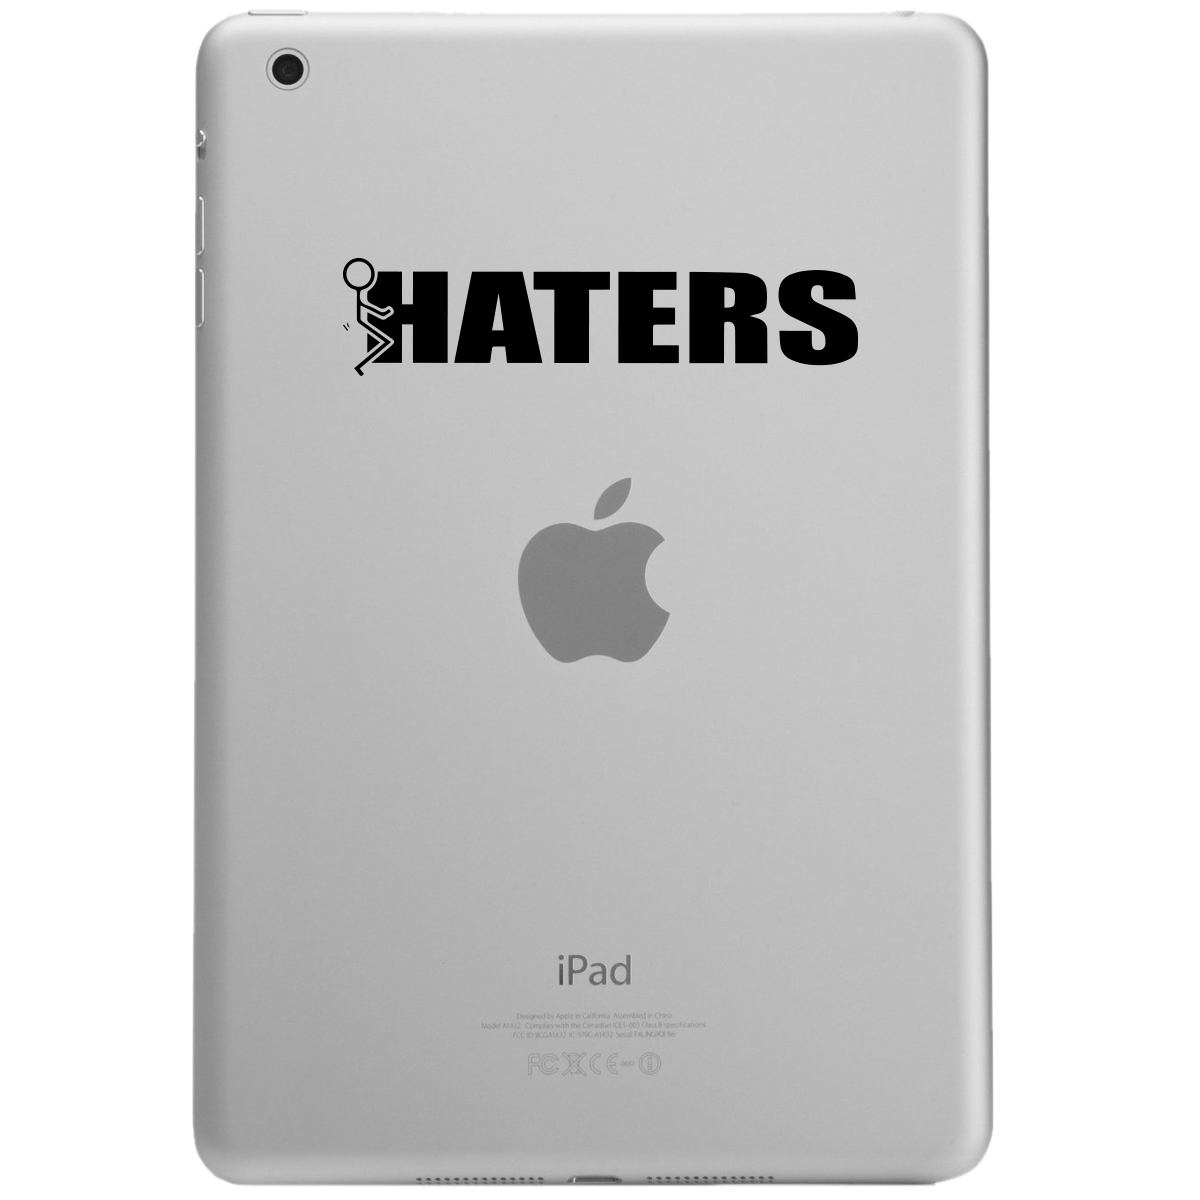 Funny Humping Stick Figure F*ck Haters iPad Tablet Vinyl Sticker Decal